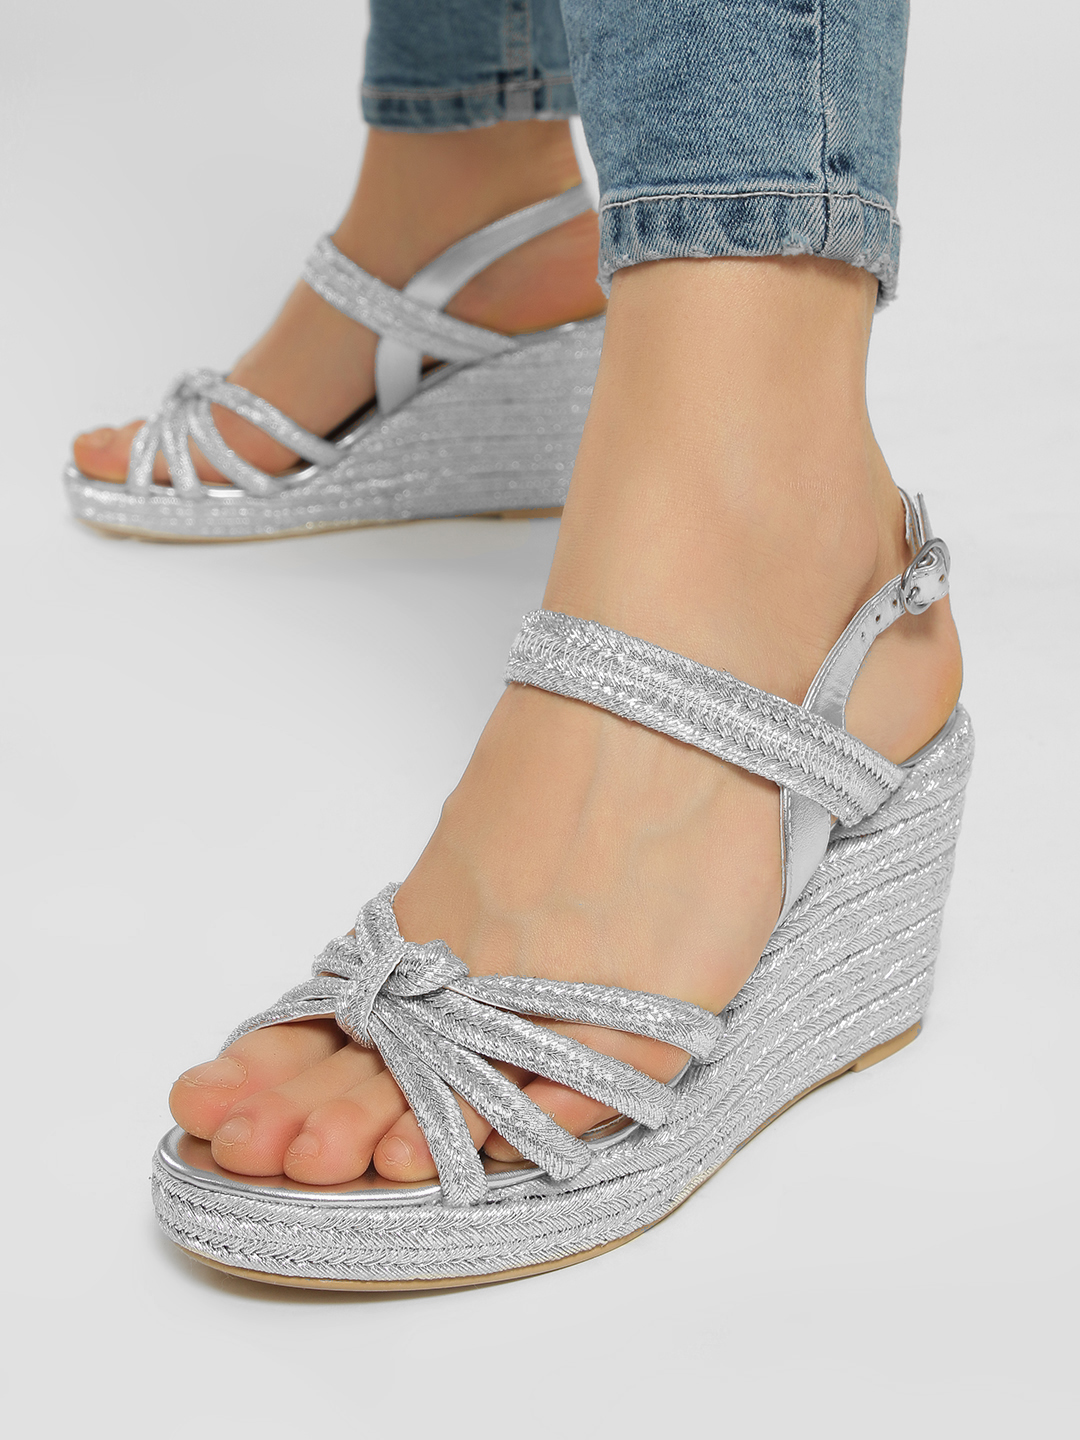 KOOVS Silver Metallic Multi-Strap Wedges 1